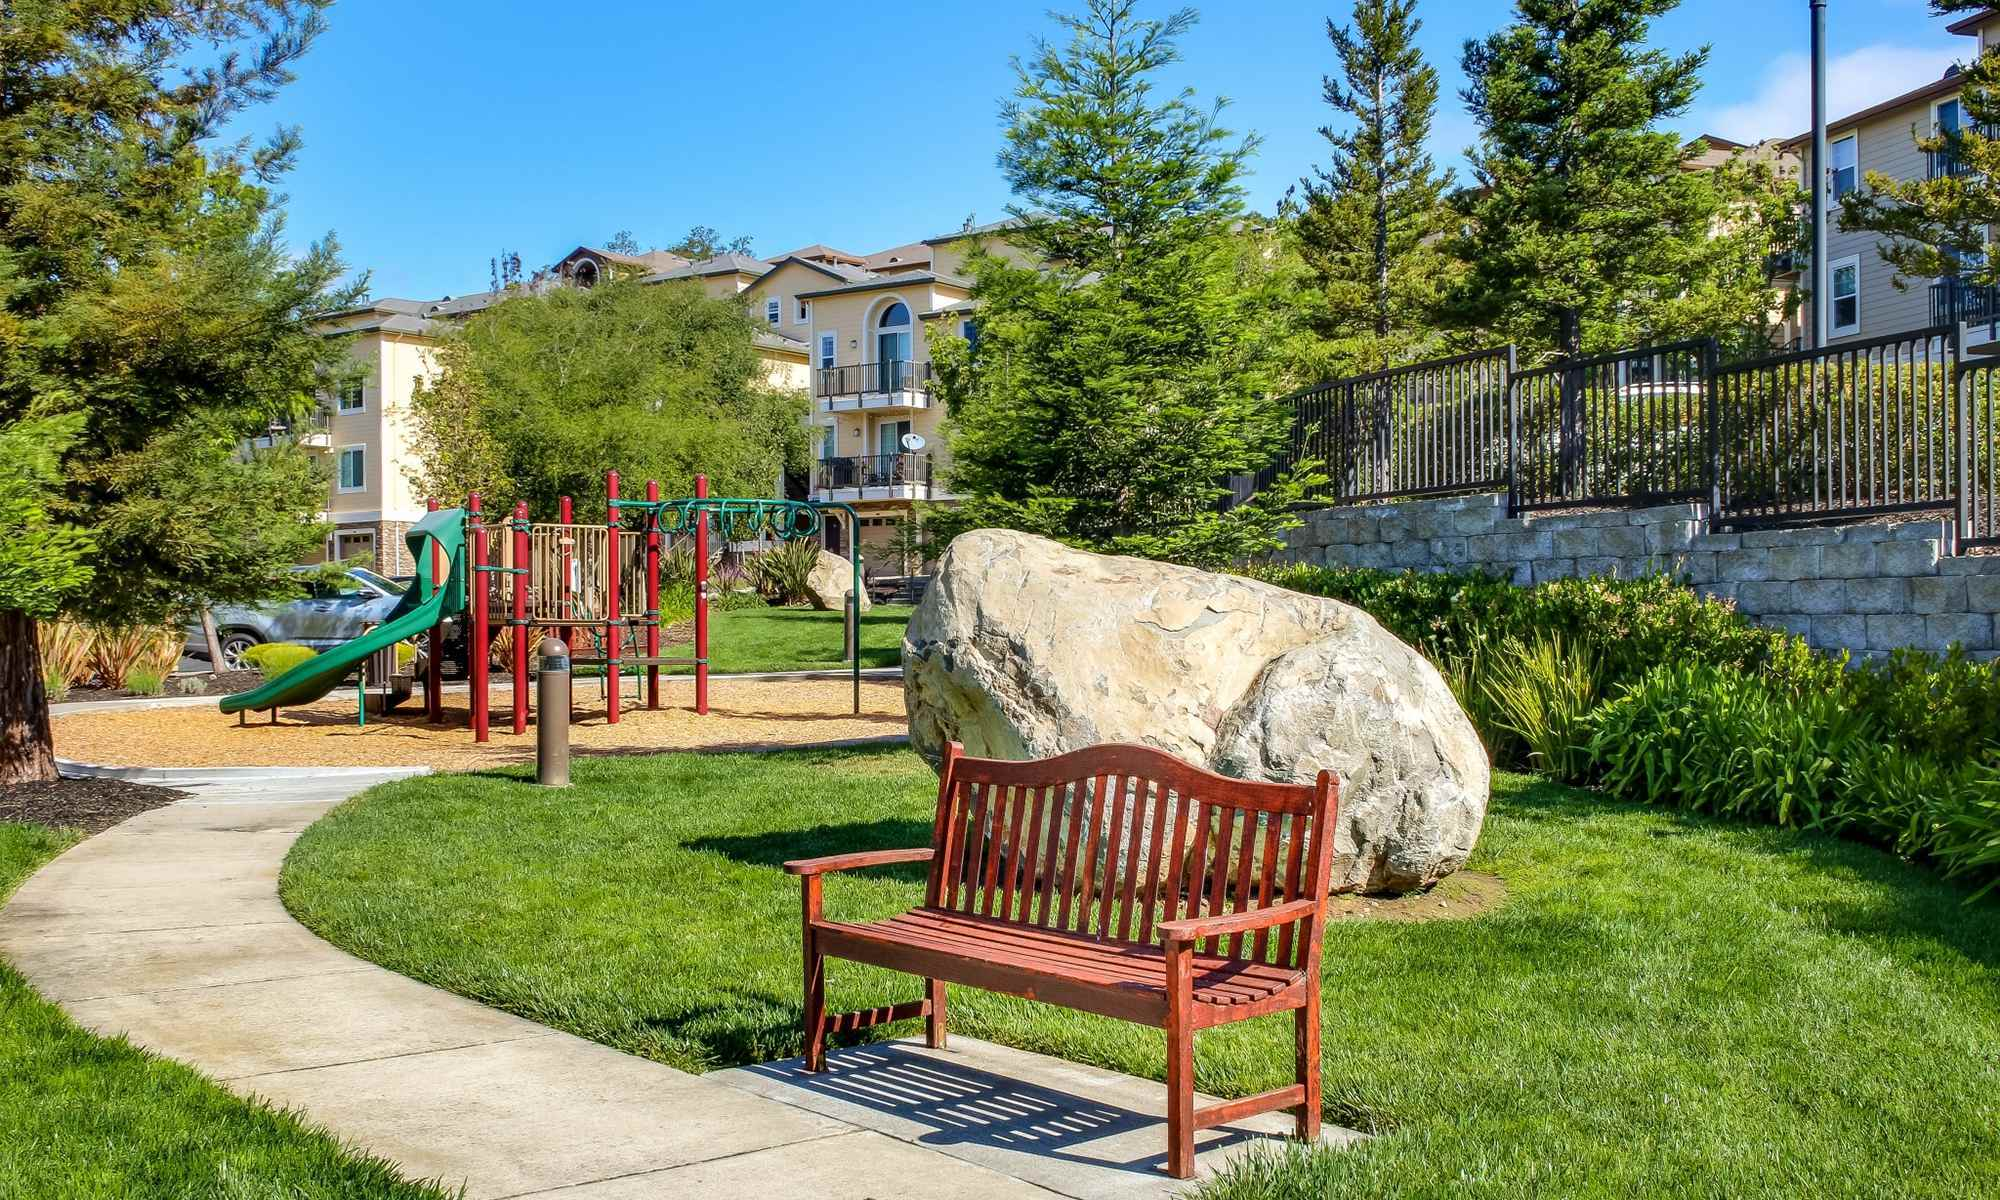 Playground Area at the Santa Rosa Apartments